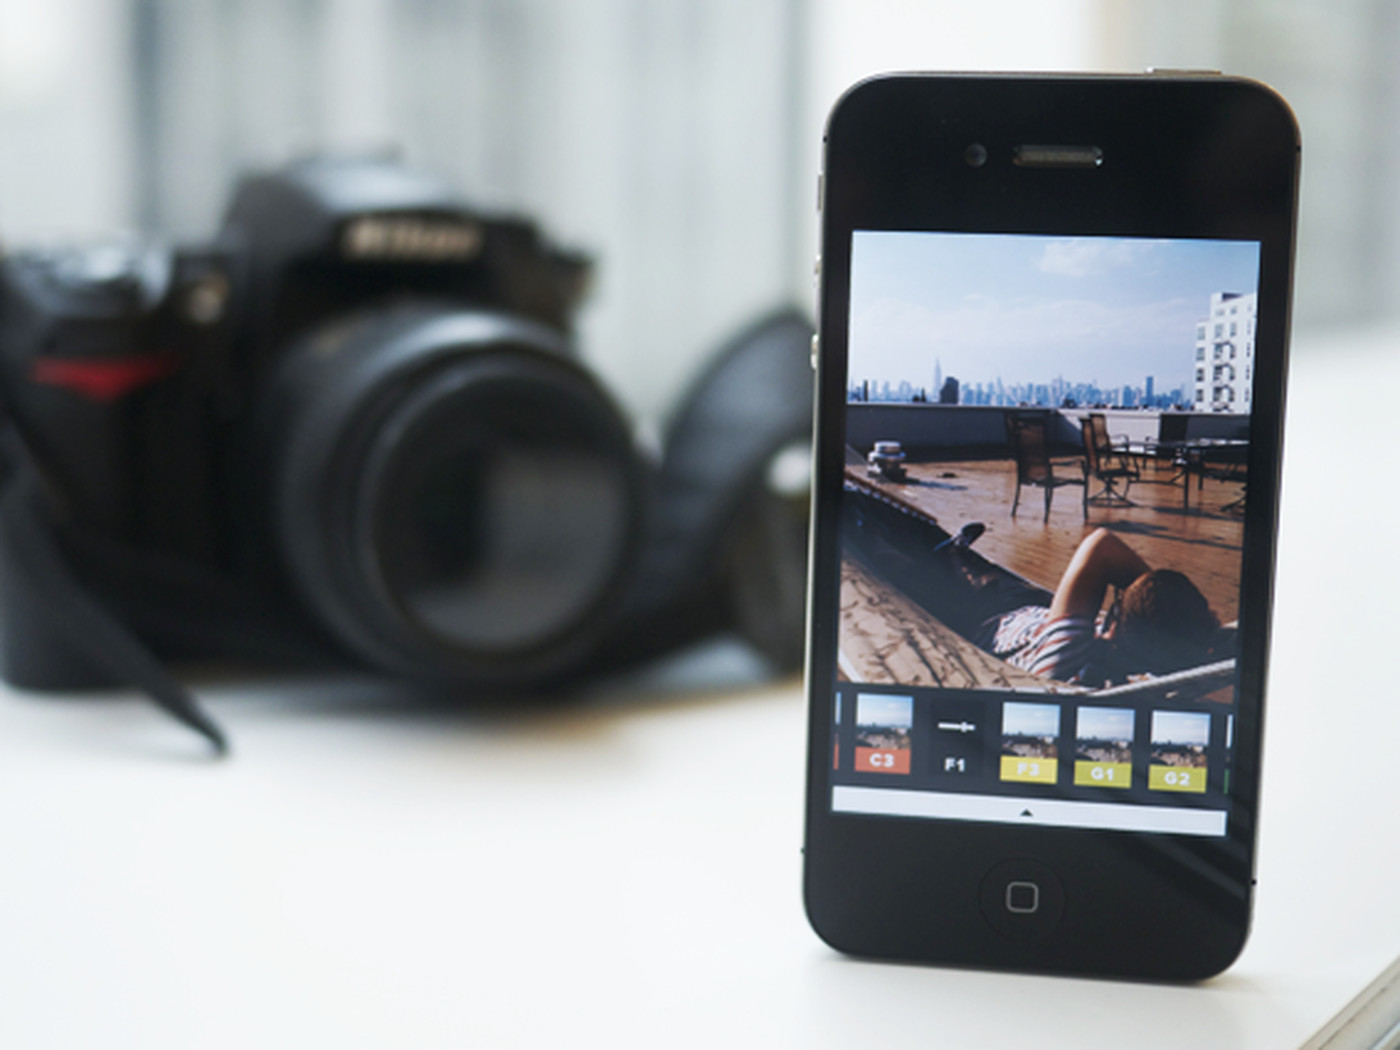 VSCO's stylish filters can now be applied to videos - The Verge